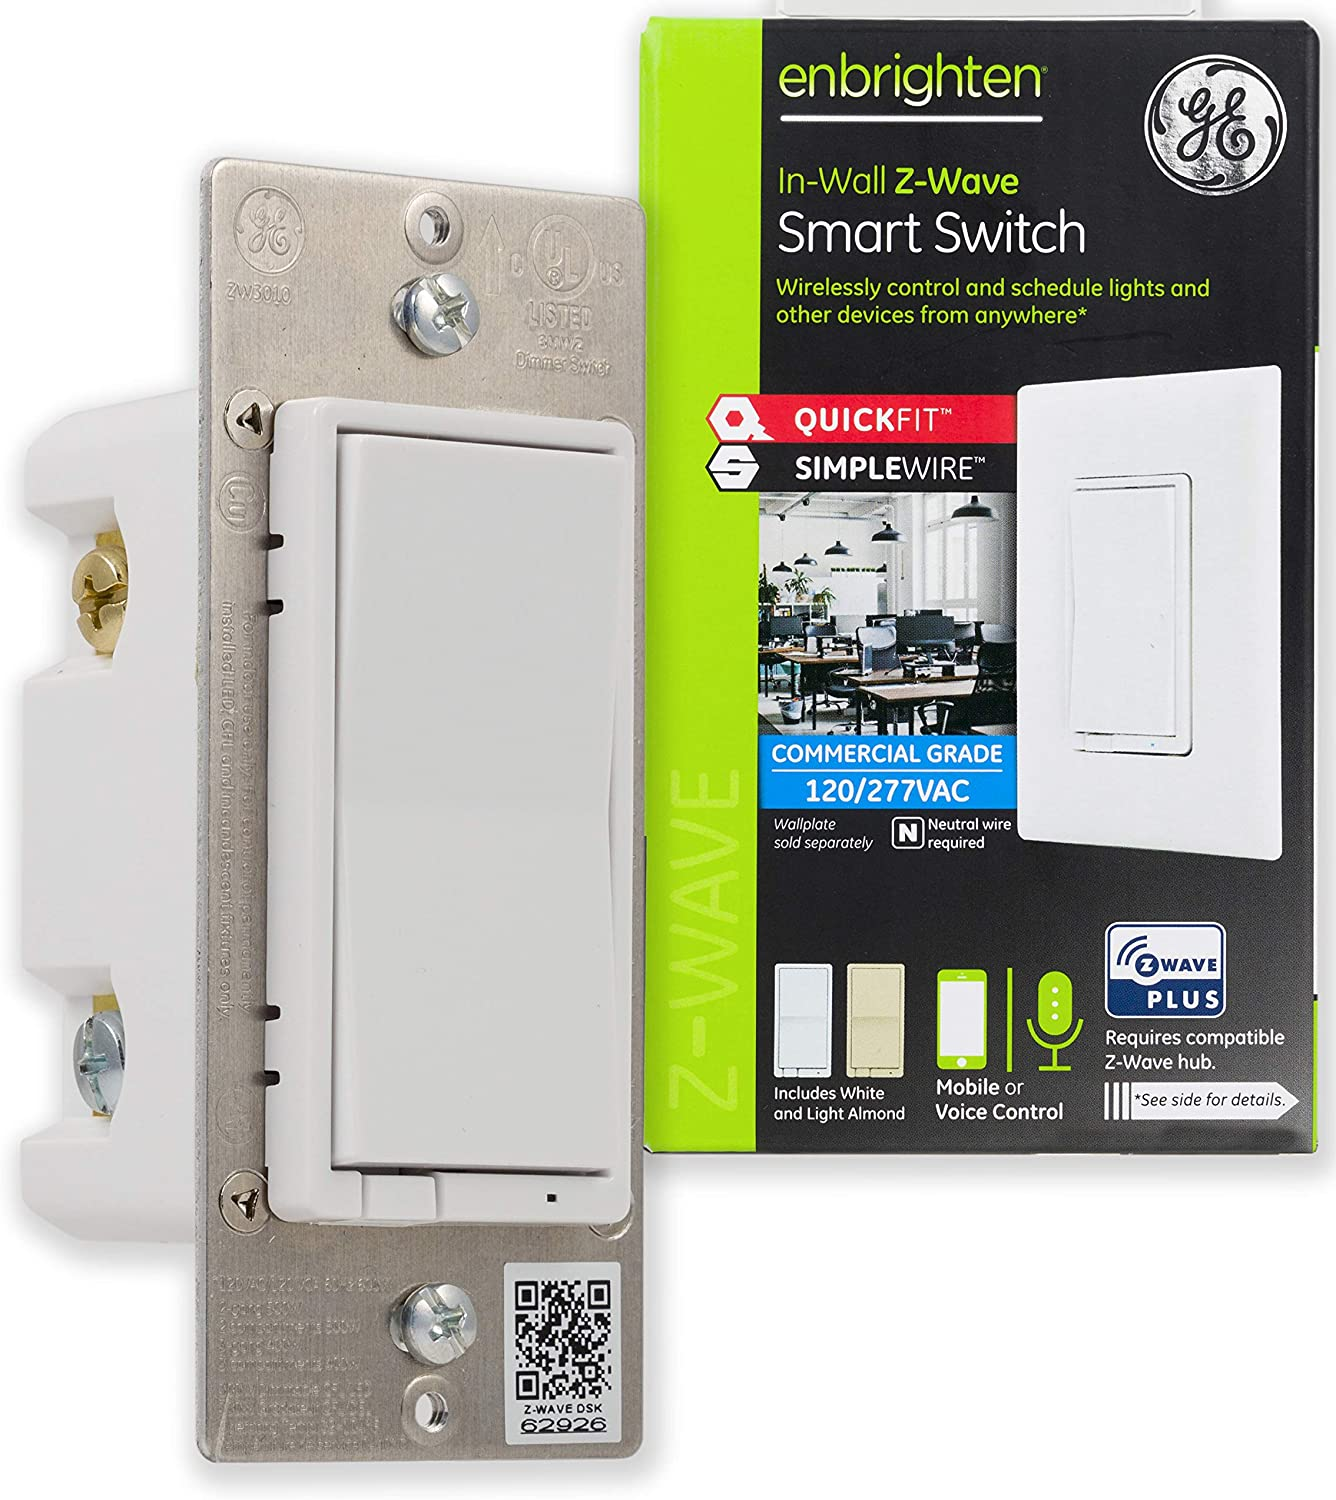 GE Enbrighten Plus Smart Switch with QuickFit and SimpleWire, in-Wall Commercial Grade 120/277 VAC, Z-Wave Hub Required, Works with Ring, SmartThings, Alexa, 43072, White & Light Almond